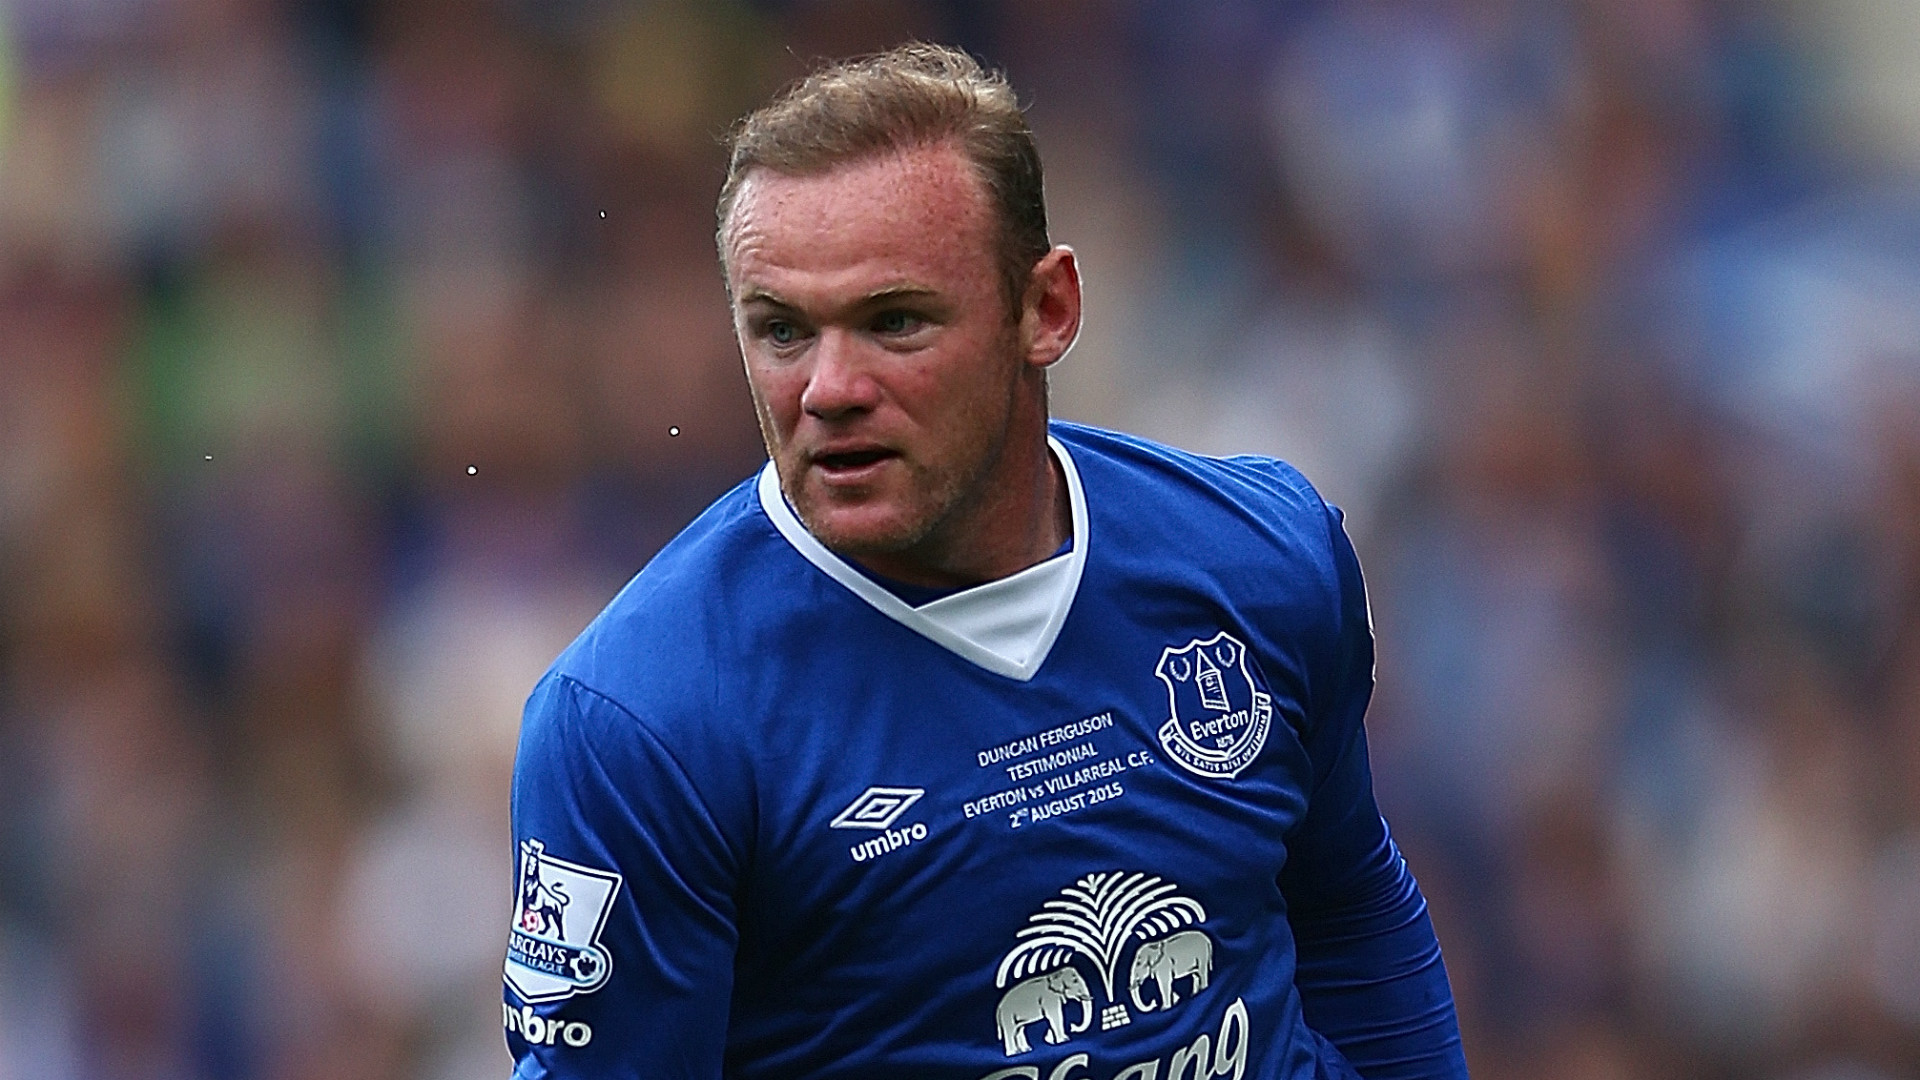 Rooney ends Man Utd career and returns to Everton